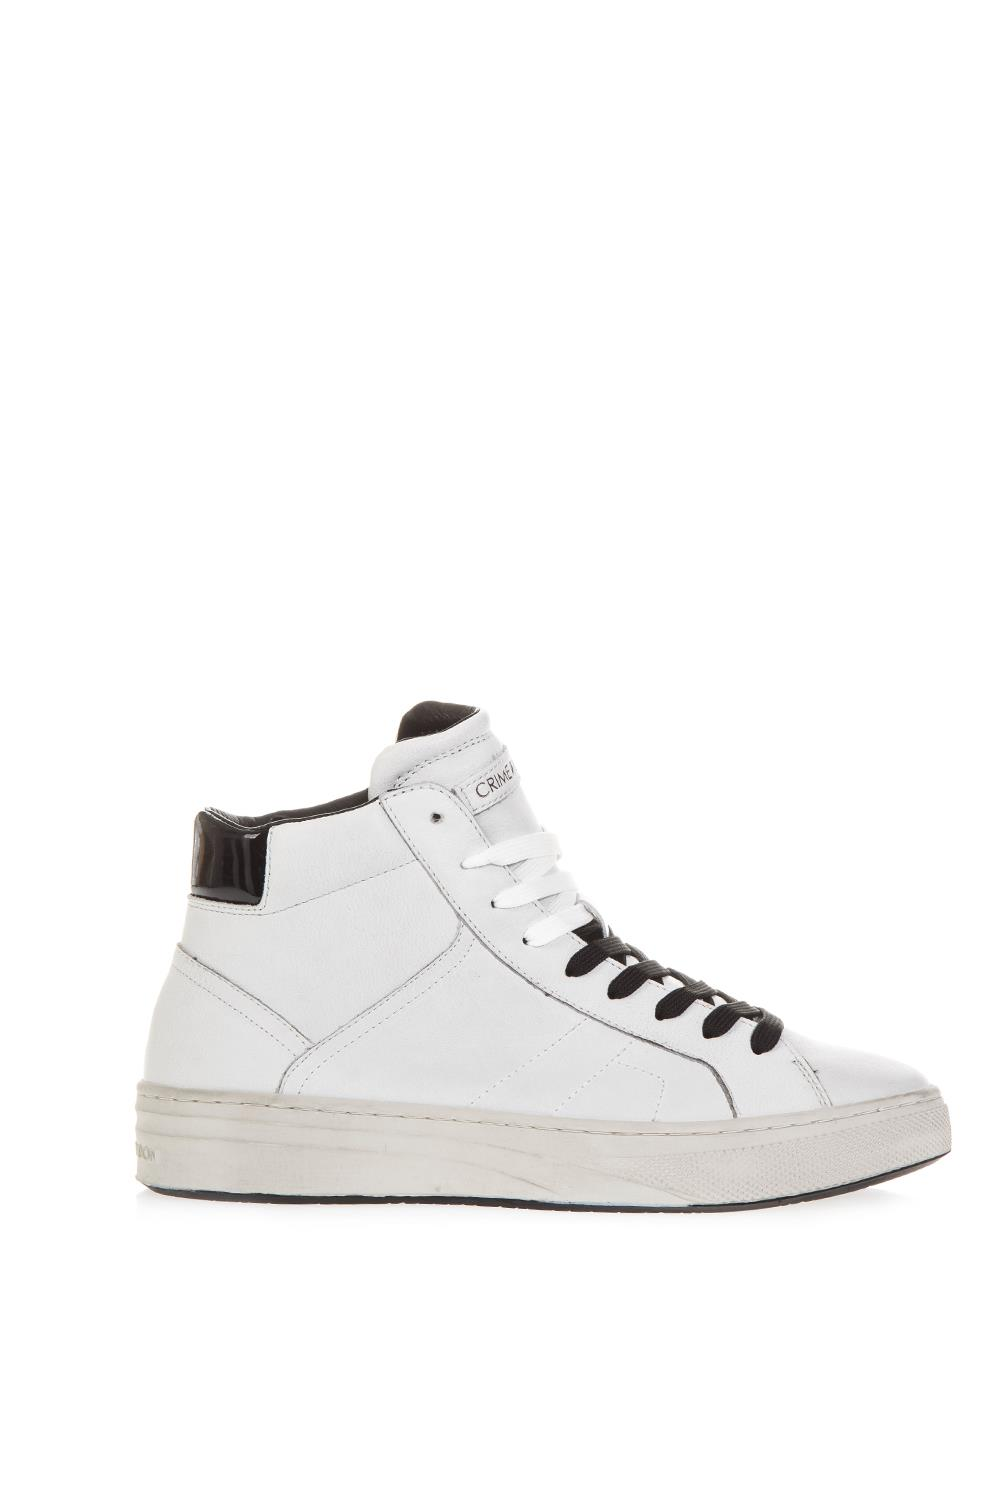 5b11f01210567 WHITE LEATHER HIGH-TOP SNEAKERS FW 2018 - CRIME LONDON - Boutique Galiano